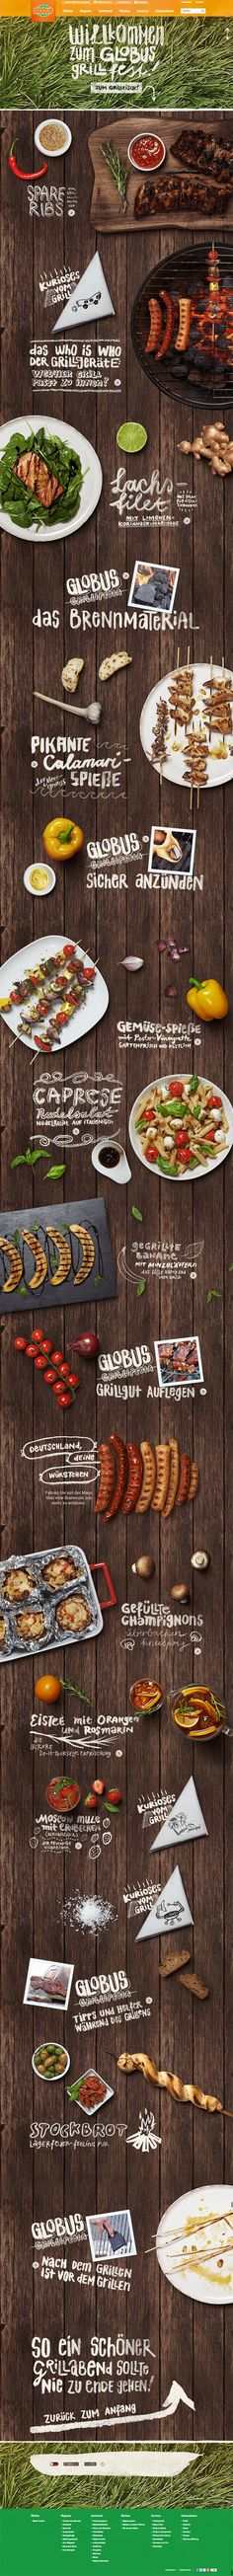 A delicate digital invitation to the richly spread Globus barbecue table with tasty recipes, mouth-watering raffles and funny little tidbits around the Germans favourite summer activity.